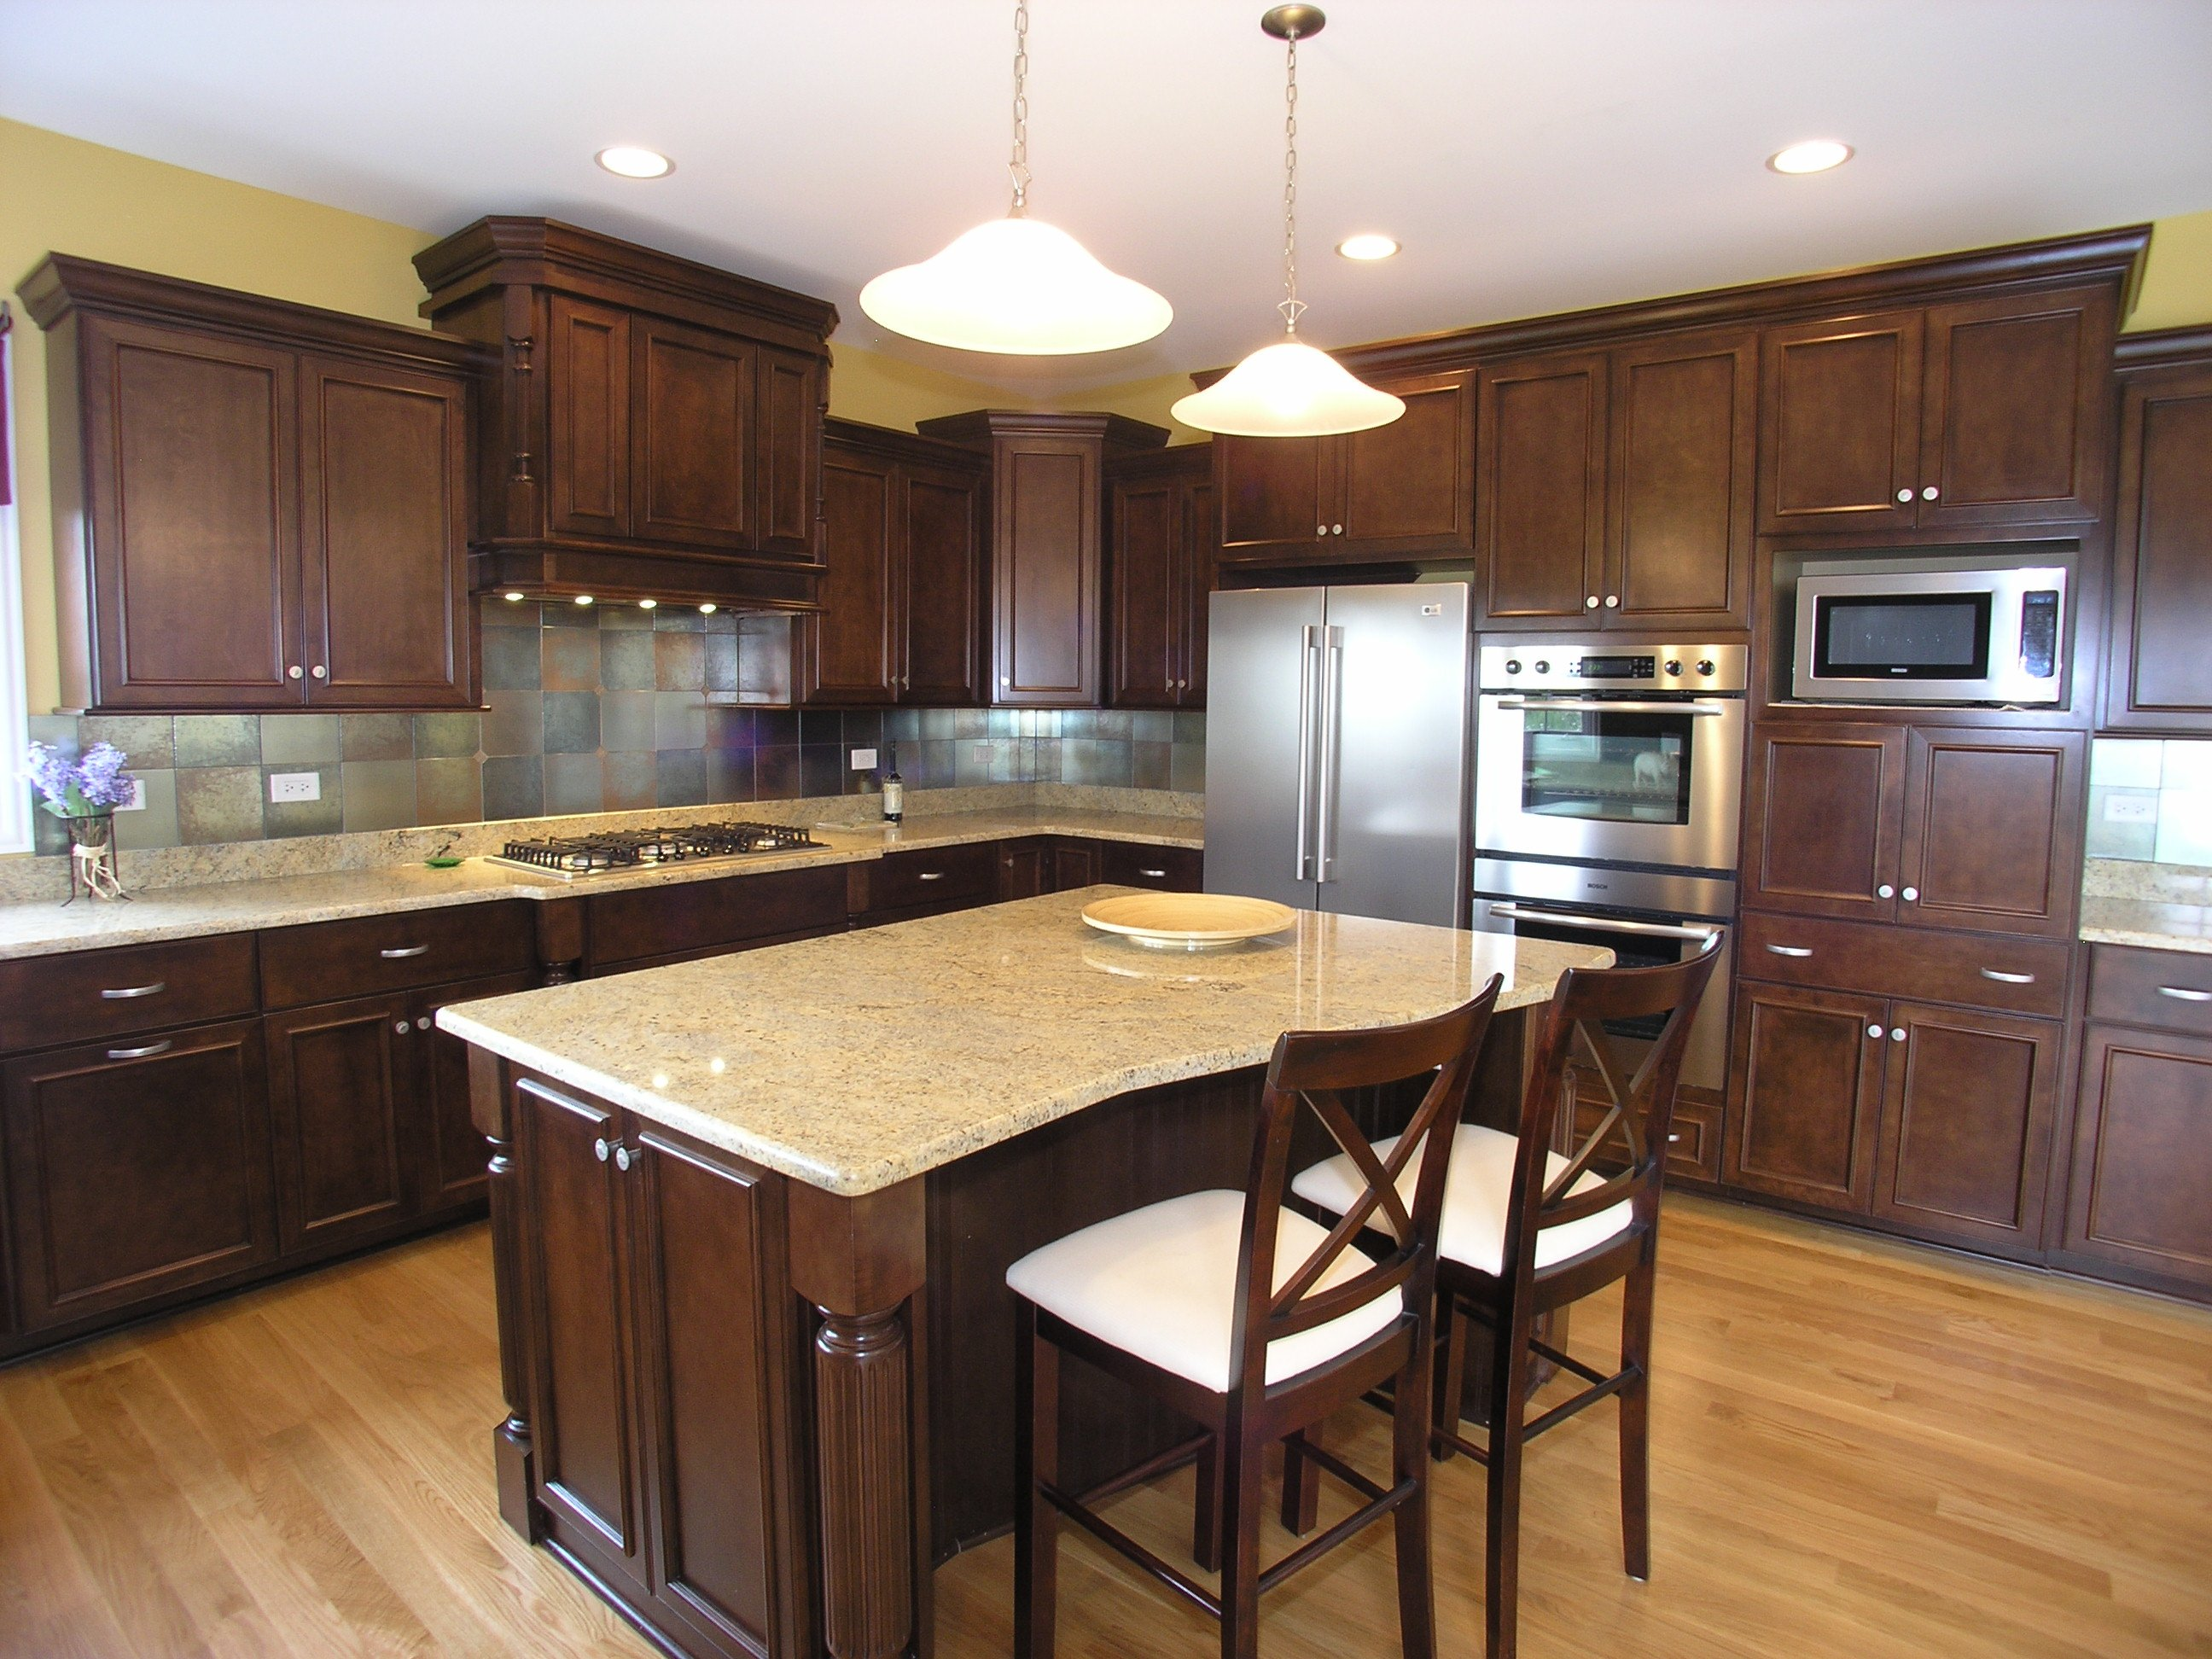 Big lots kitchen island Photo 3  Big lots kitchen island Photo 12 Kitchen  ideas. Big Lots In Rhode Island